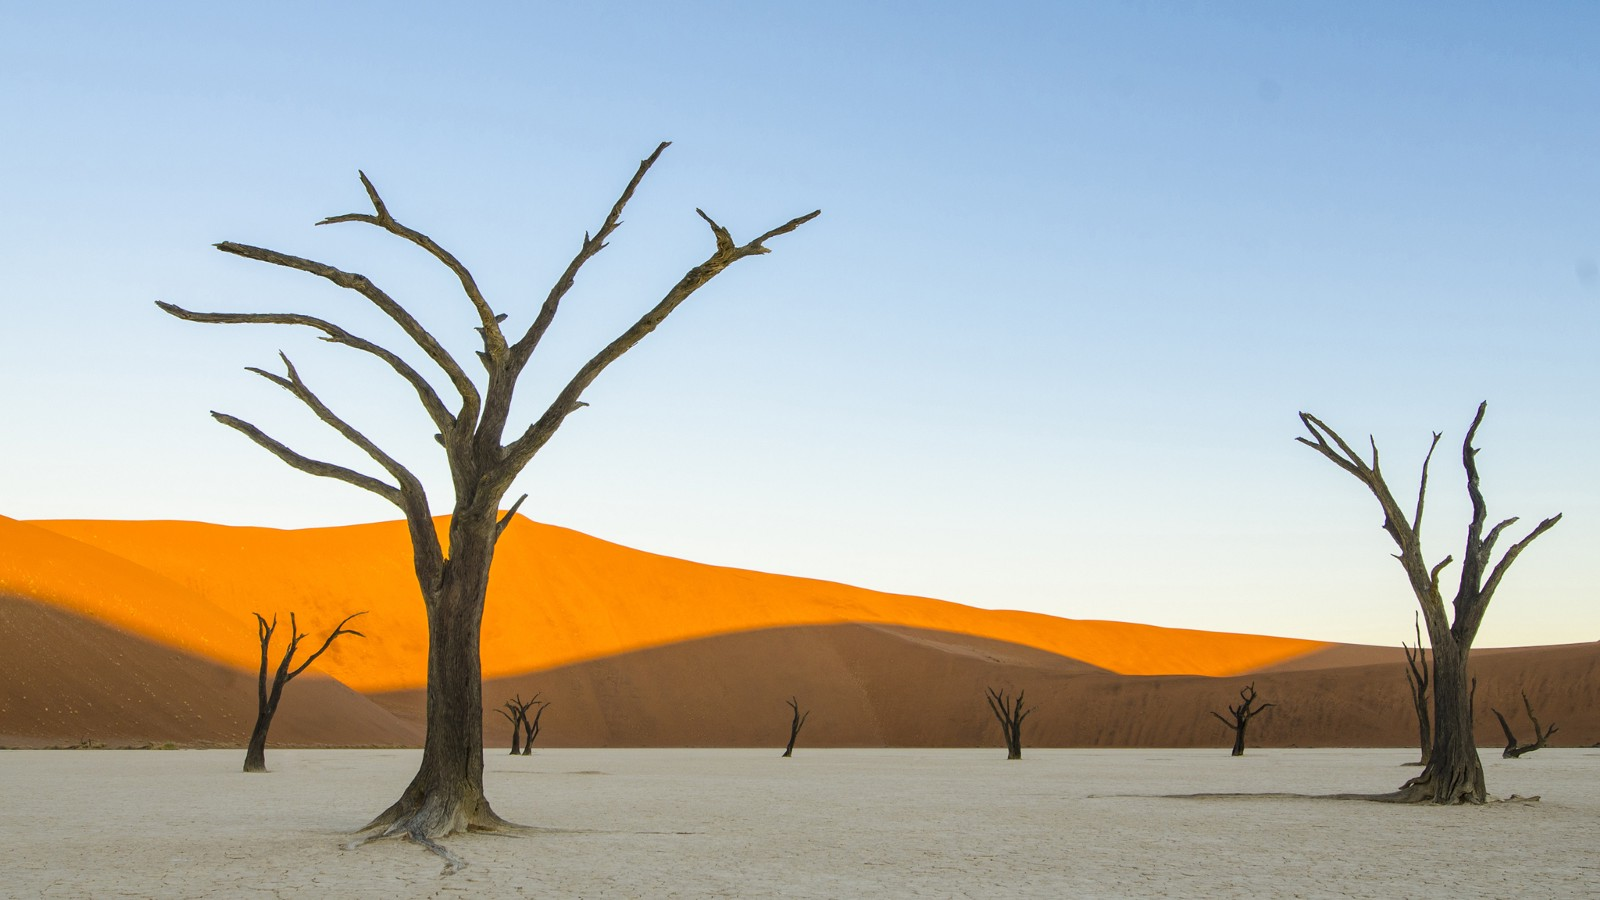 Dead trees in Deadvlei, Namibia, Africa